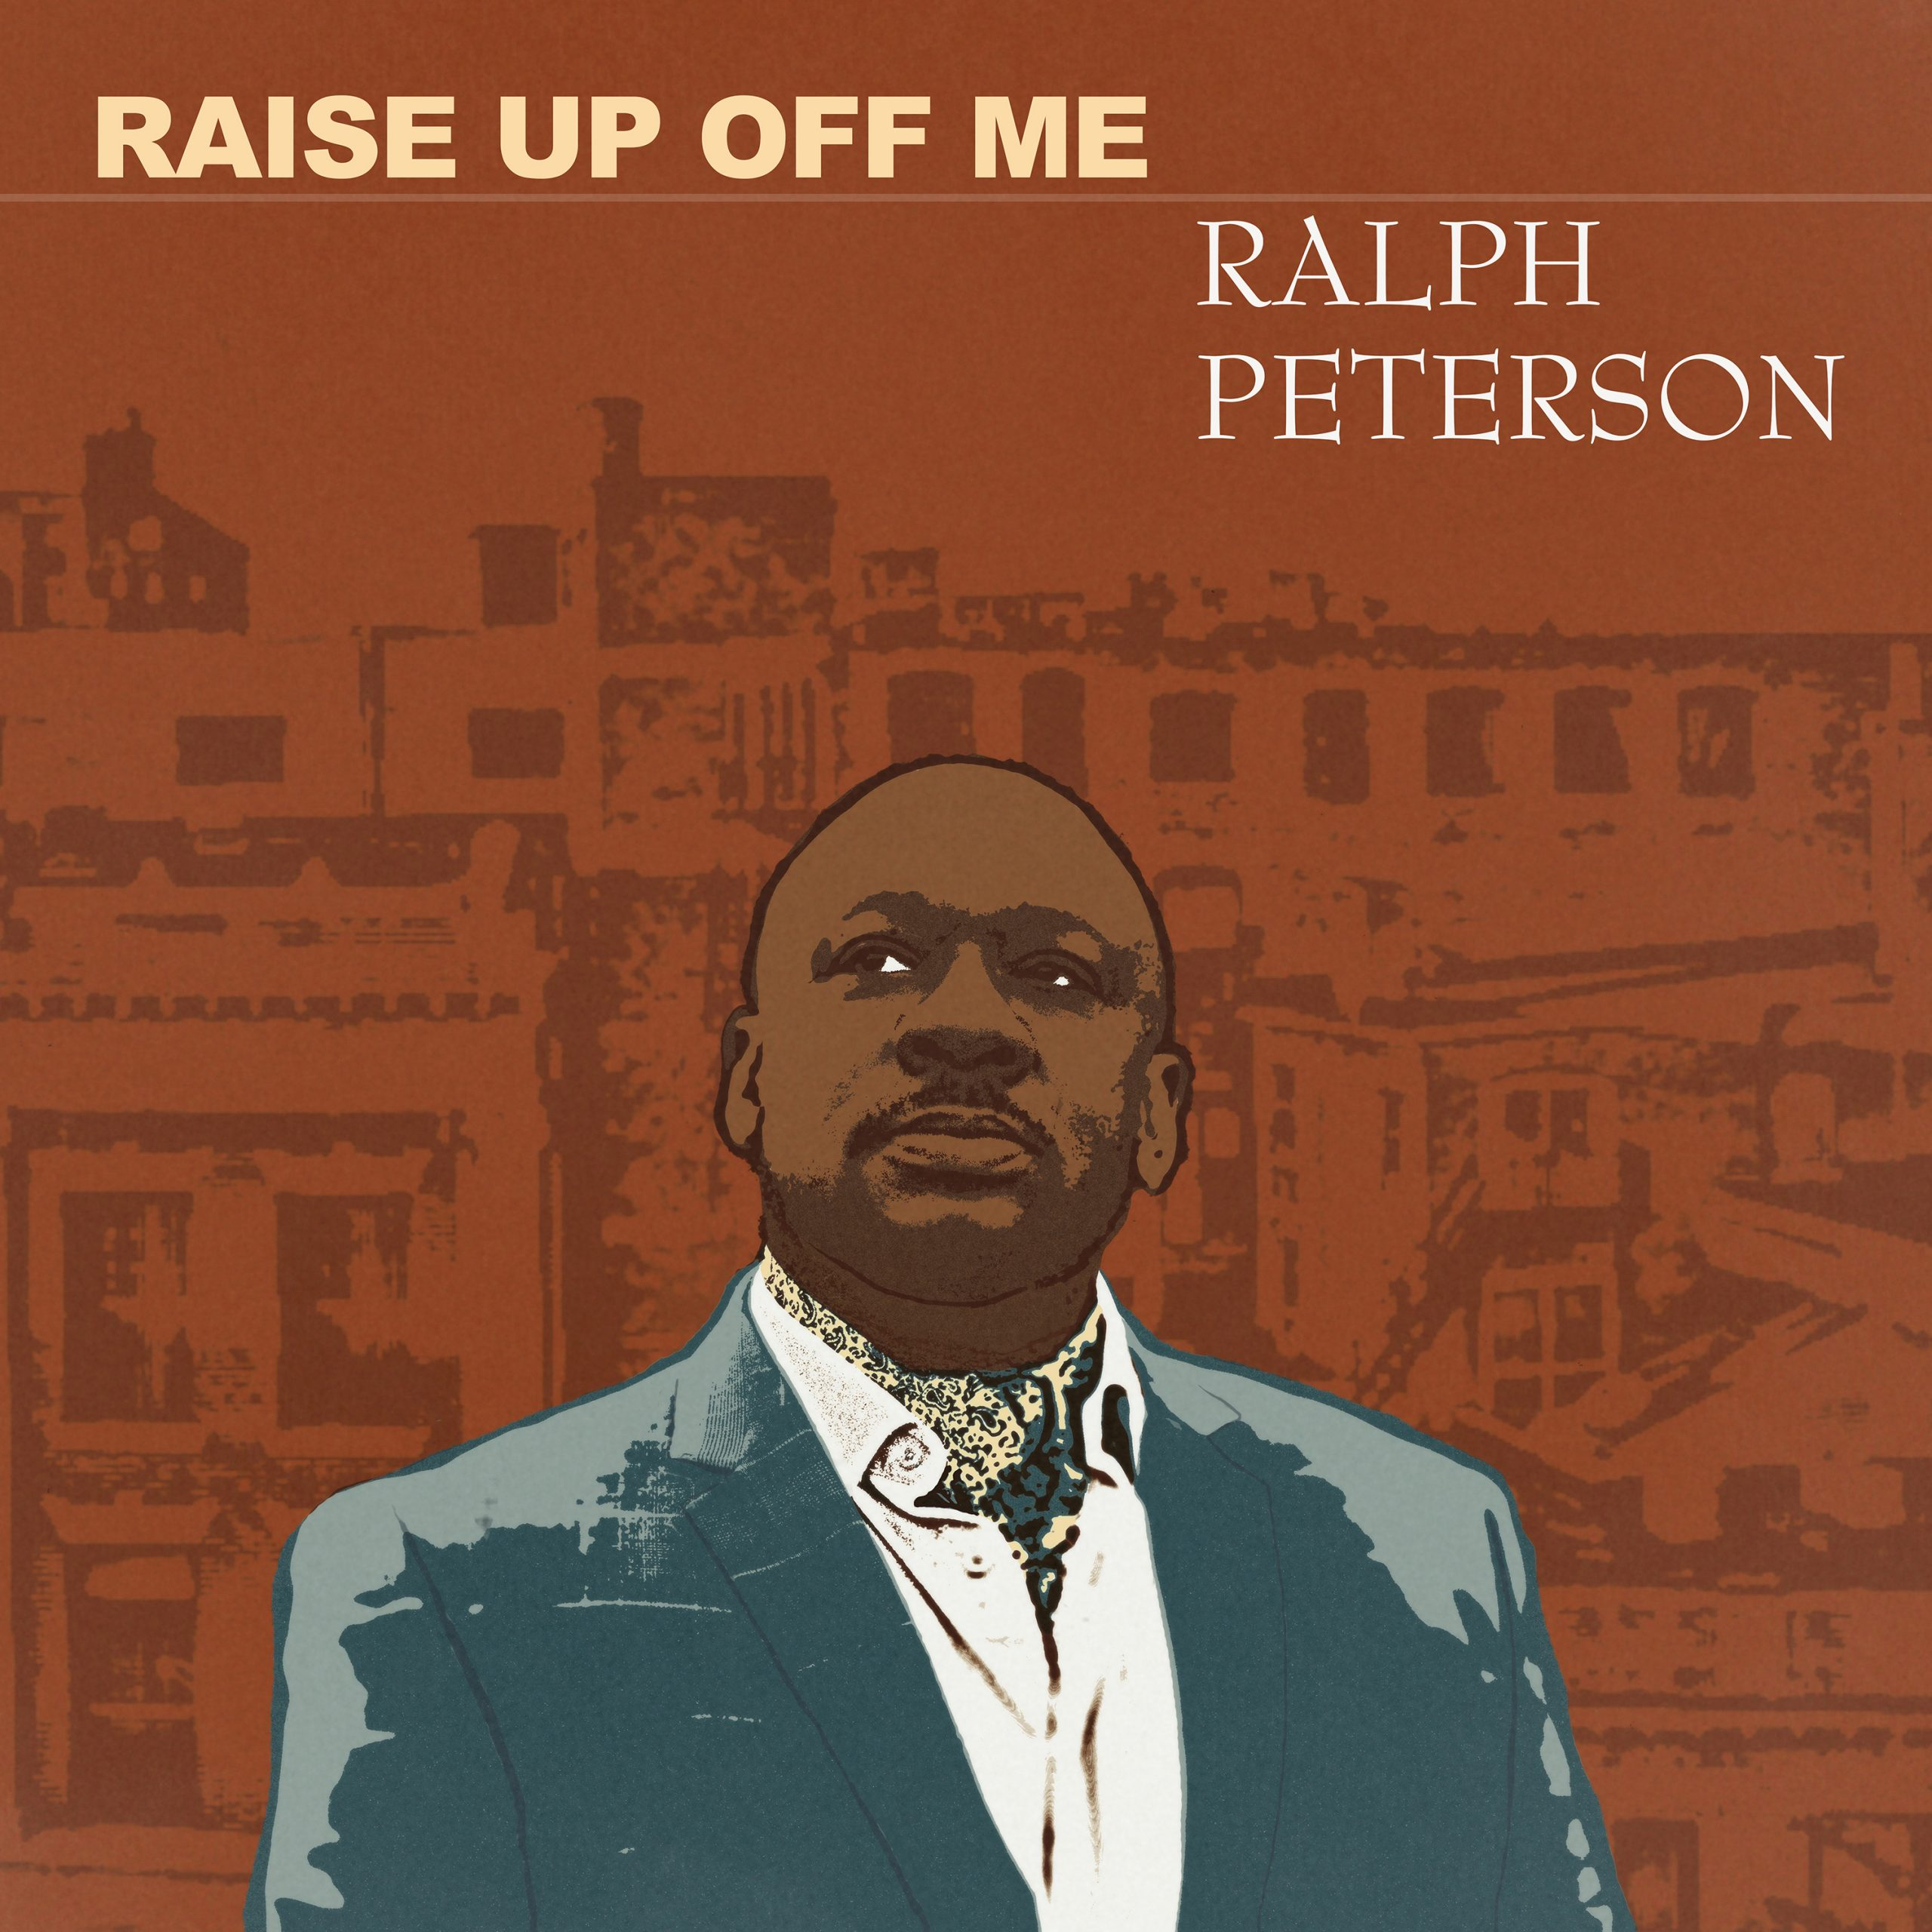 THE WEEK IN JAZZ: New Releases from Ralph Peterson and Adam Moezinia Featured – Jazziz